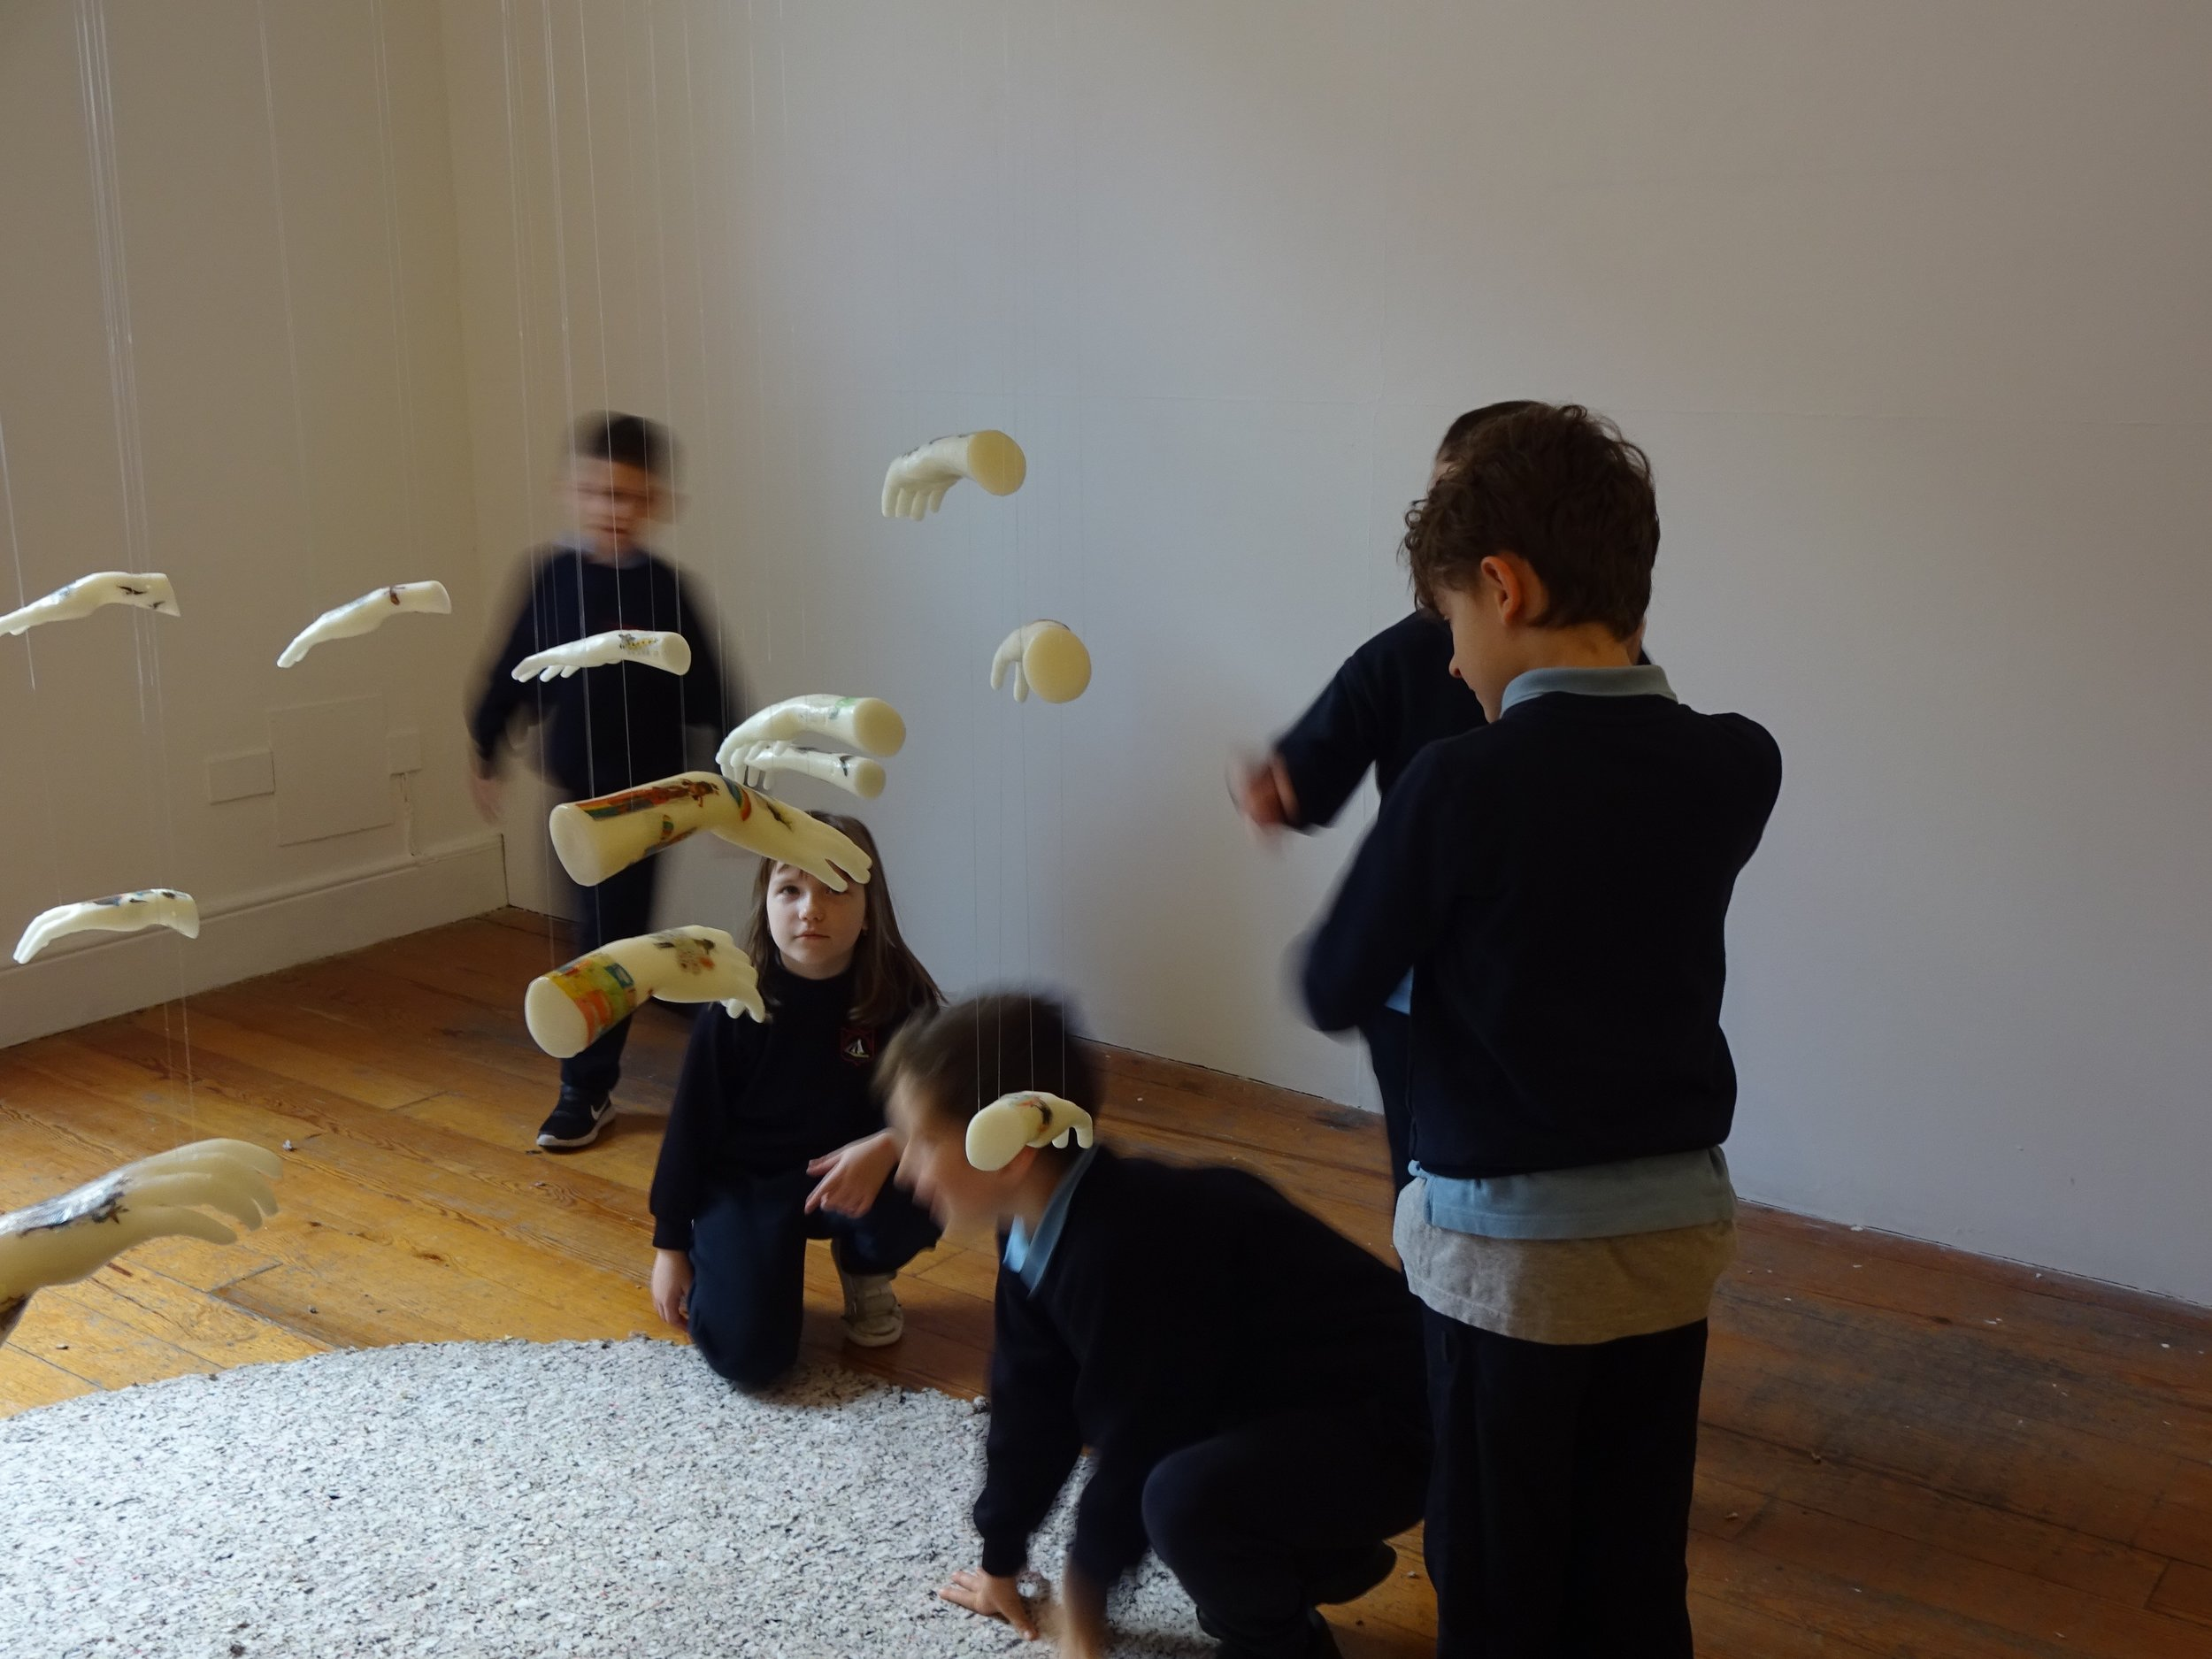 Students were given time to look at the artwork in the gallery, looking in silence for better concentration. Later questions included 'How did wax turn into hands?', 'Why do they have no thumbs'?'